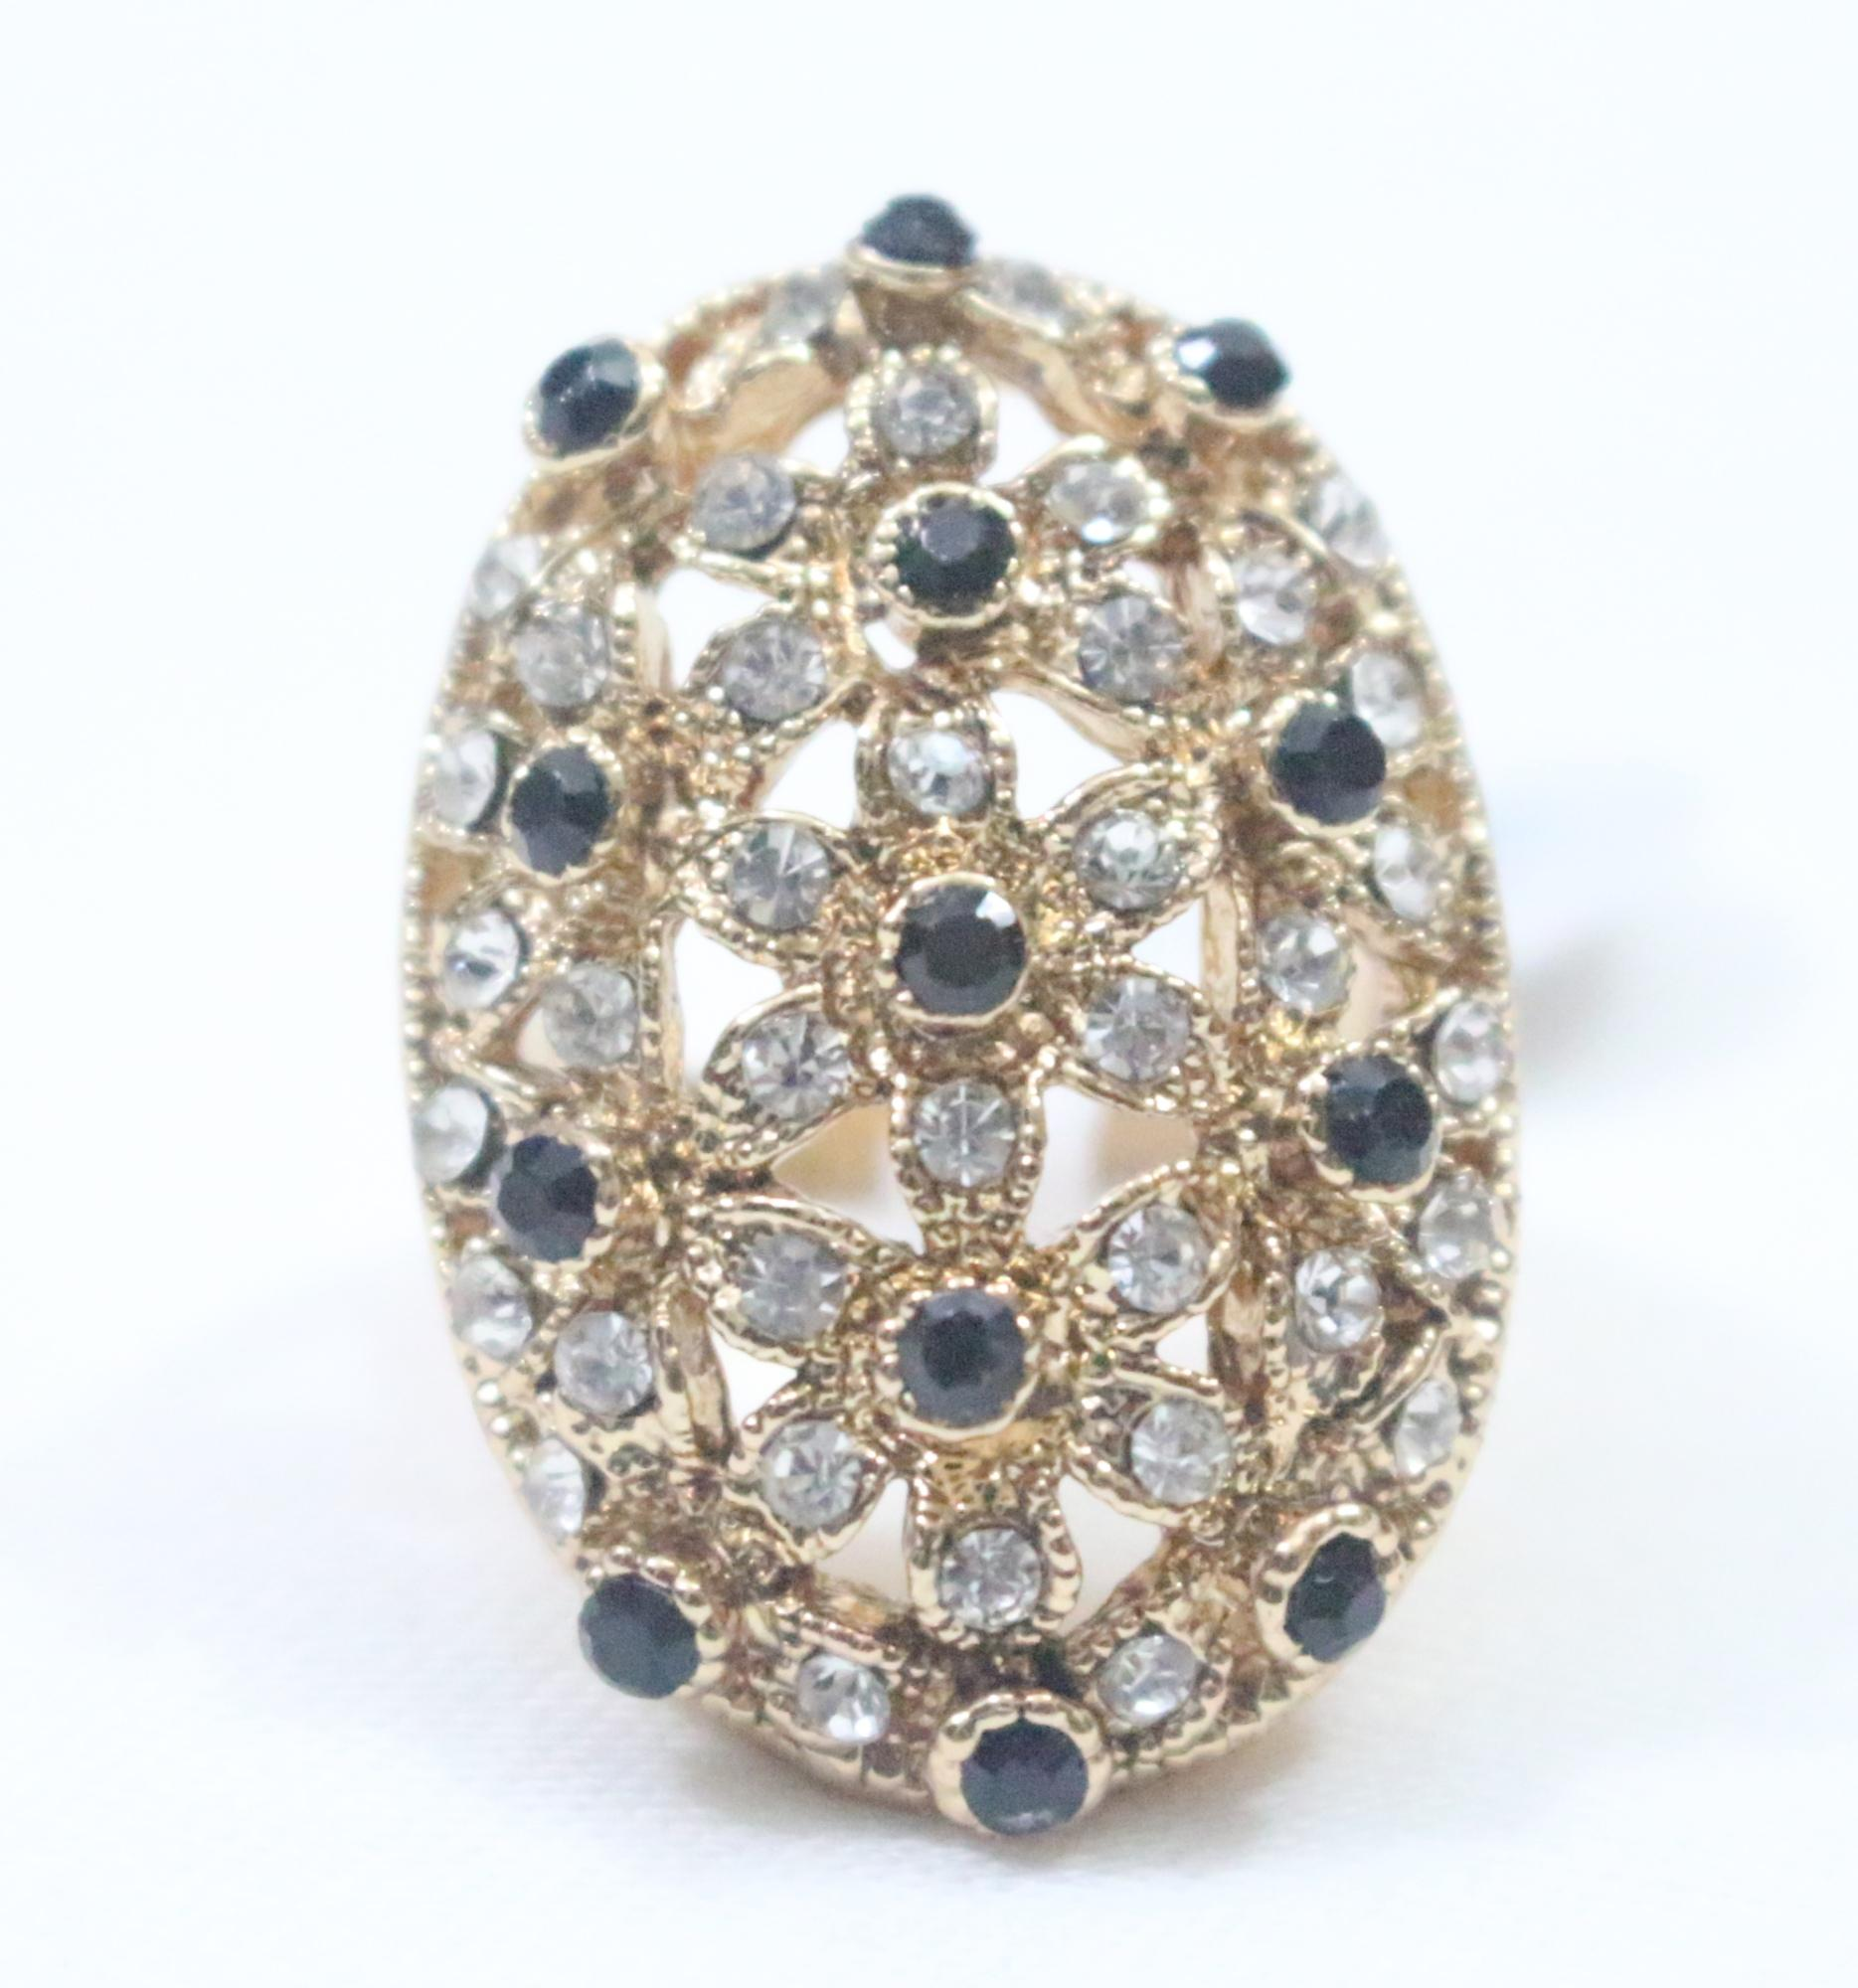 Newest Crystal Metal Fashion Beauty Rings For Women High Quality Bling Ring